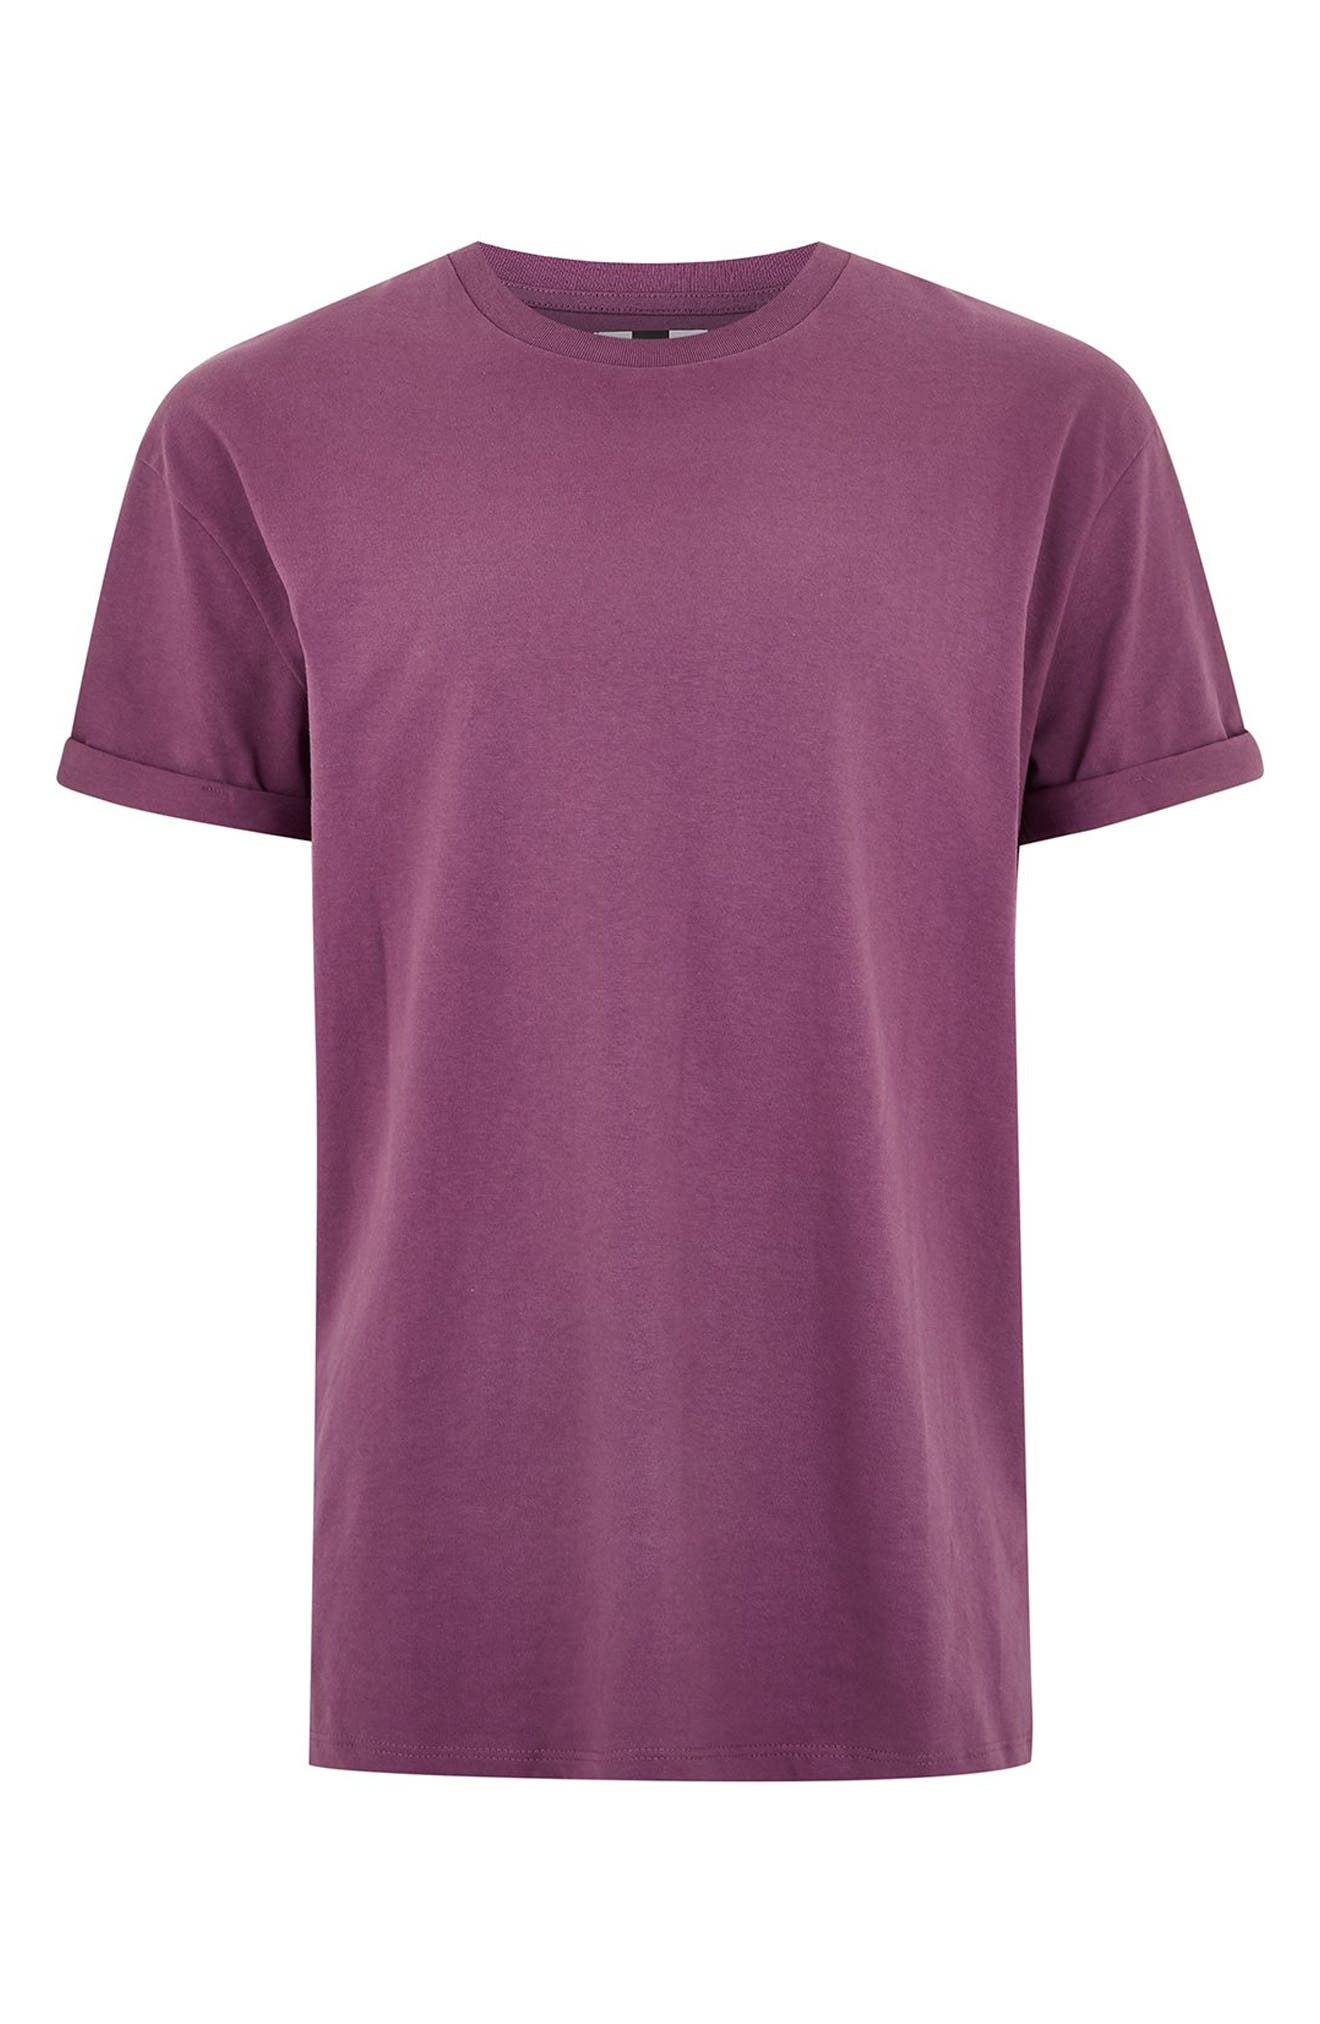 Oversize Fit Roller T-Shirt,                             Alternate thumbnail 3, color,                             PURPLE